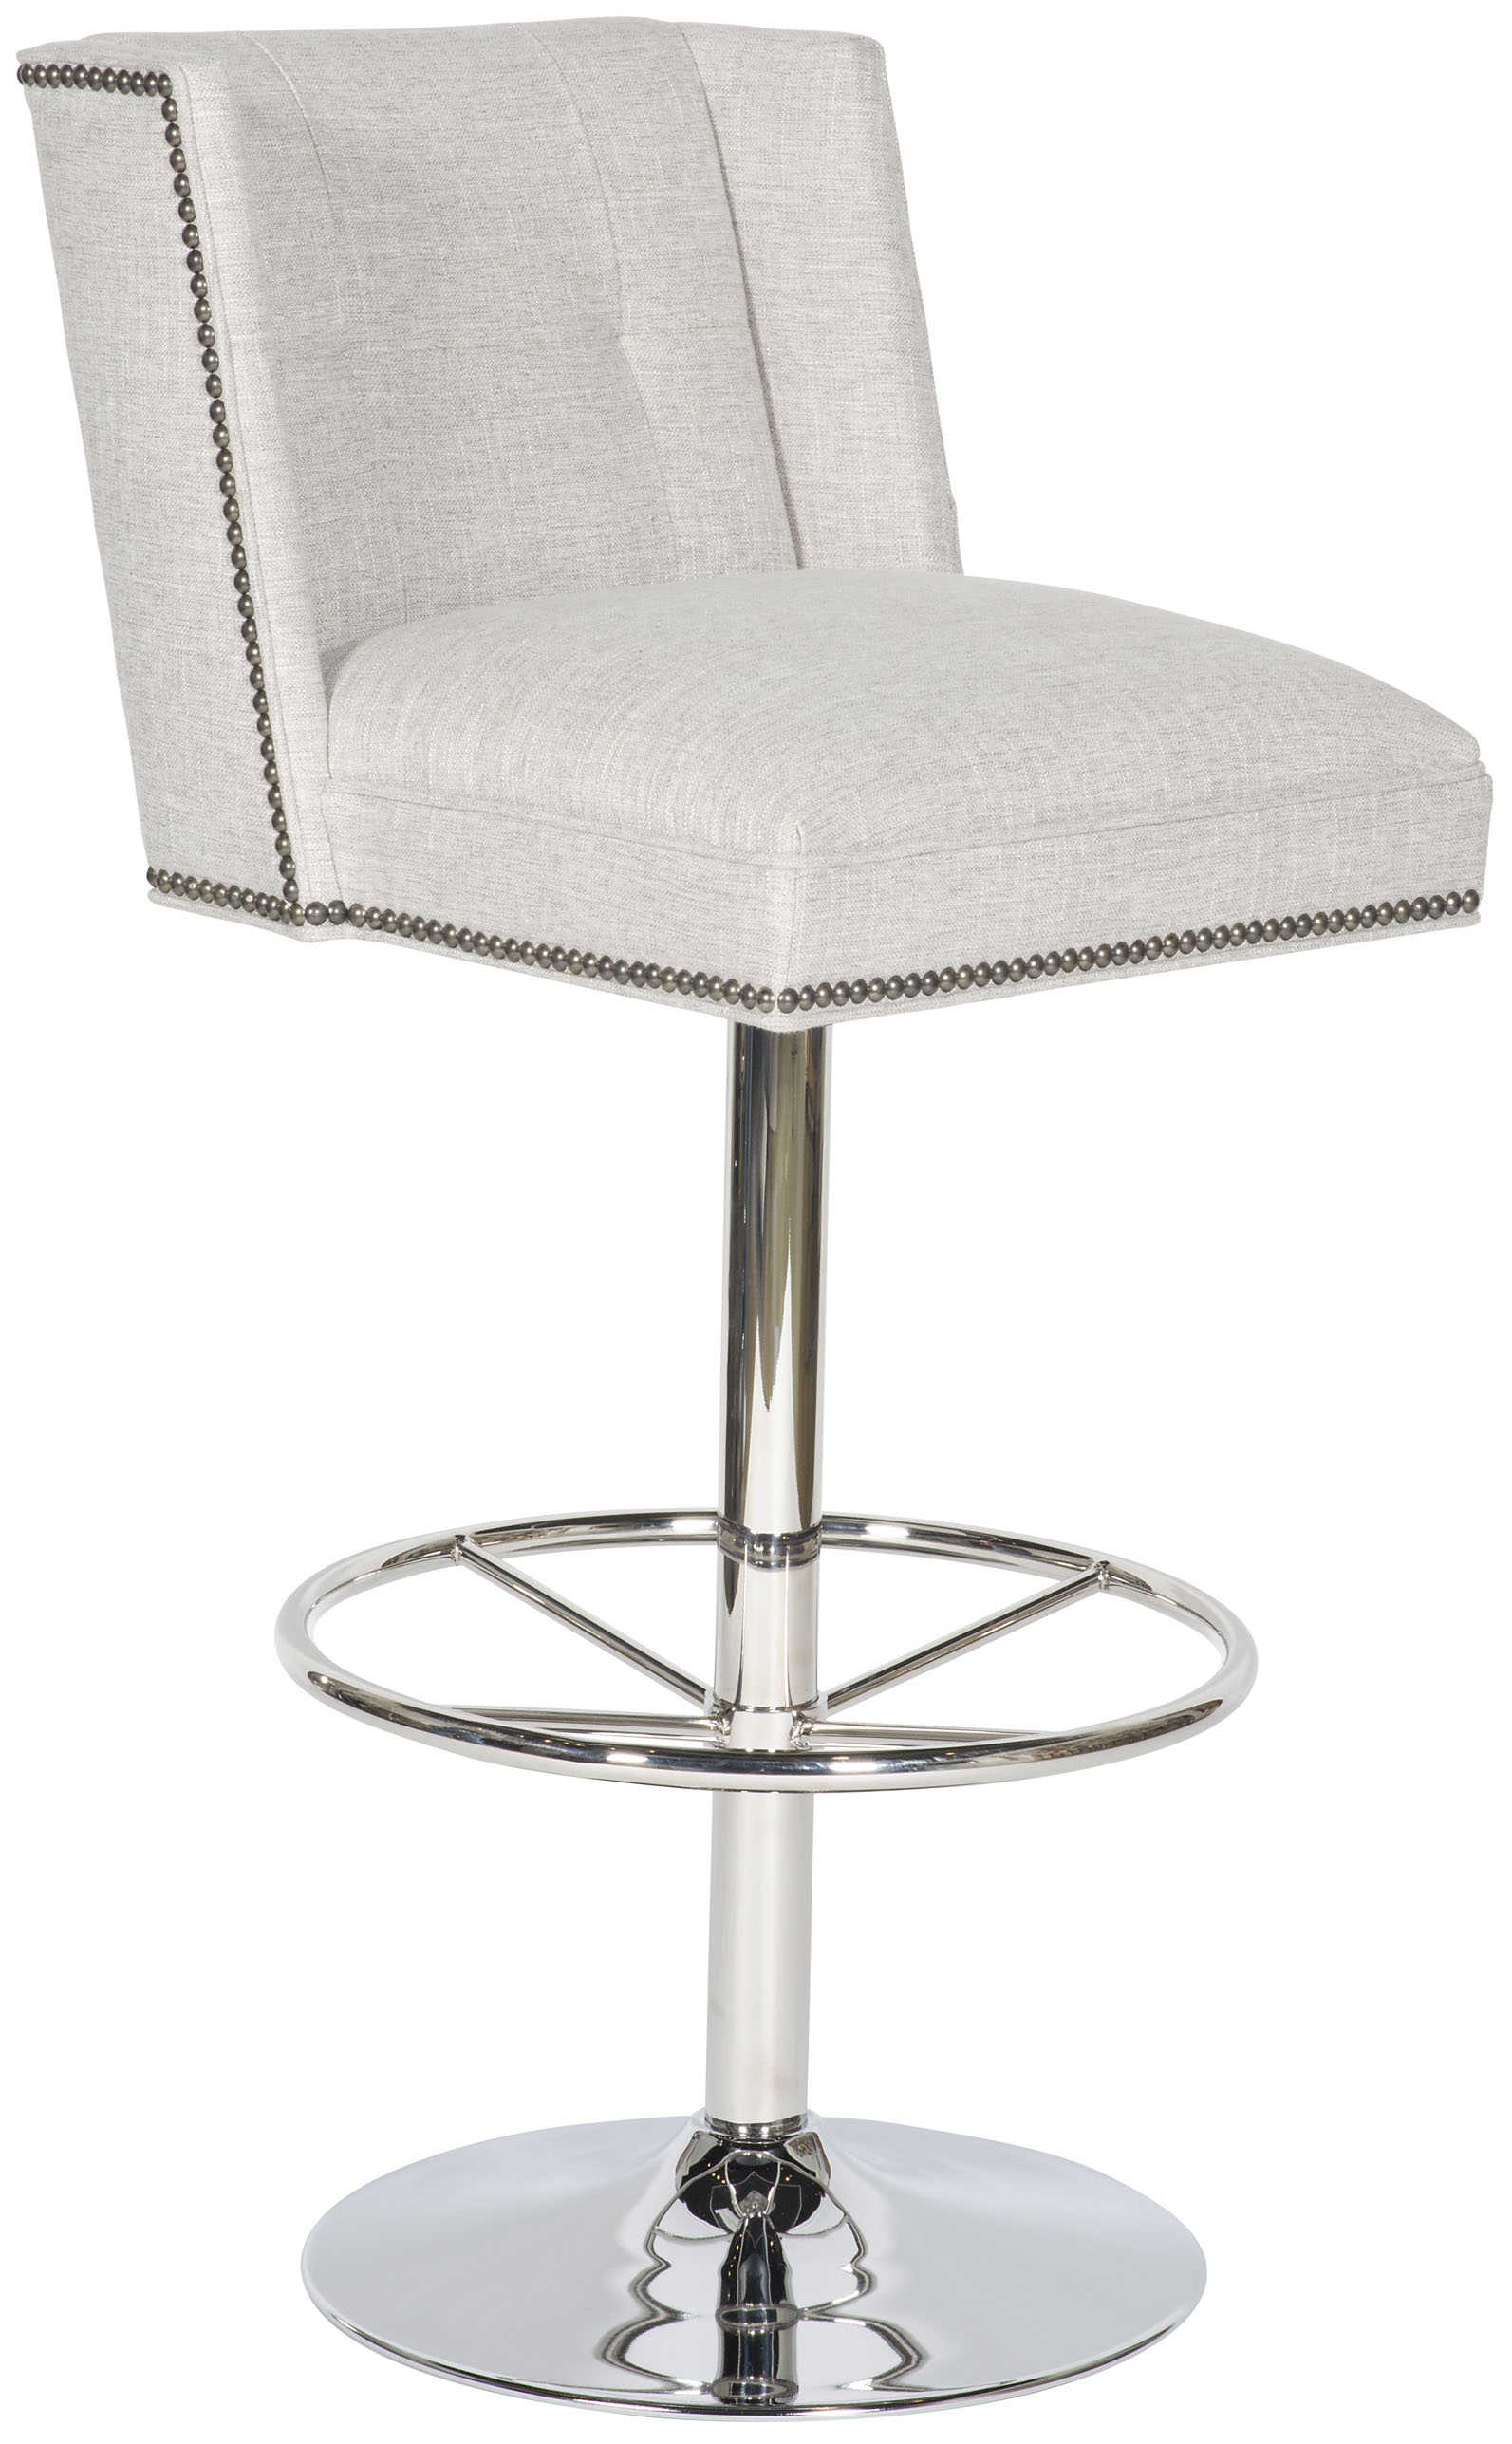 Enzo Bar Stool W736 Bs Our Products Vanguard Furniture